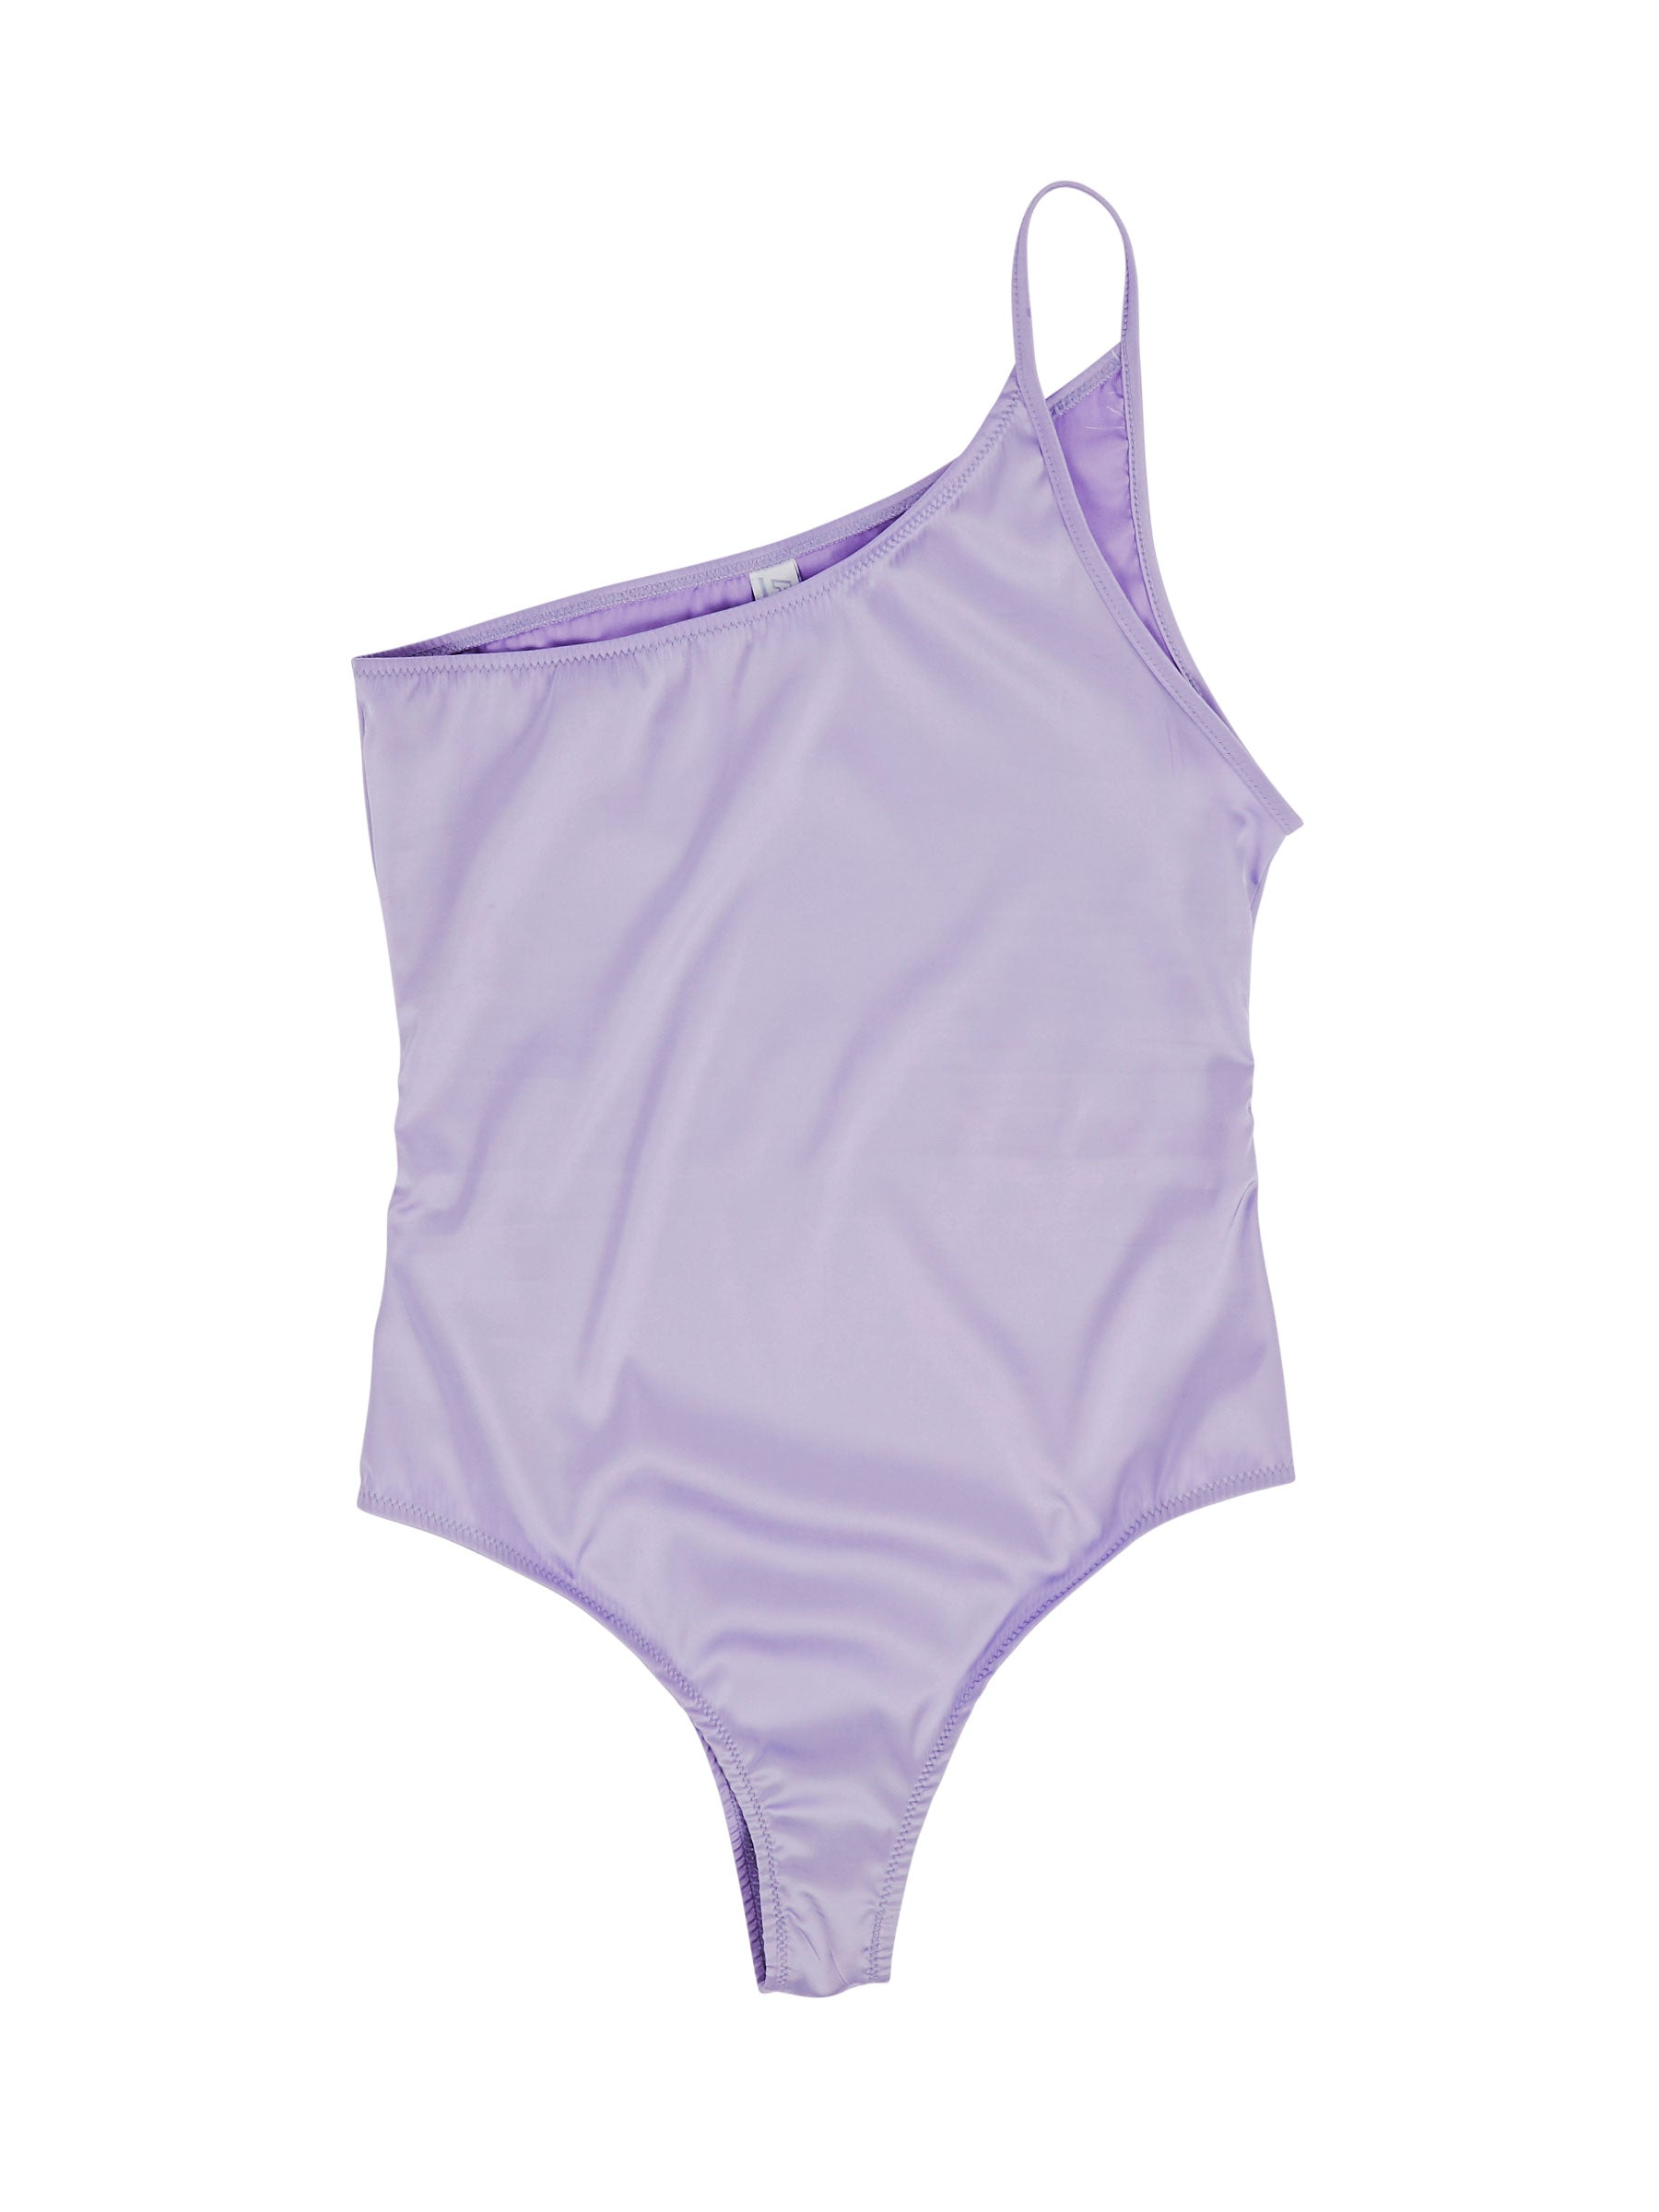 odd92 Fantabody Lilac Pina Swimsuit Spring/Summer 2019 Womenswear - 1